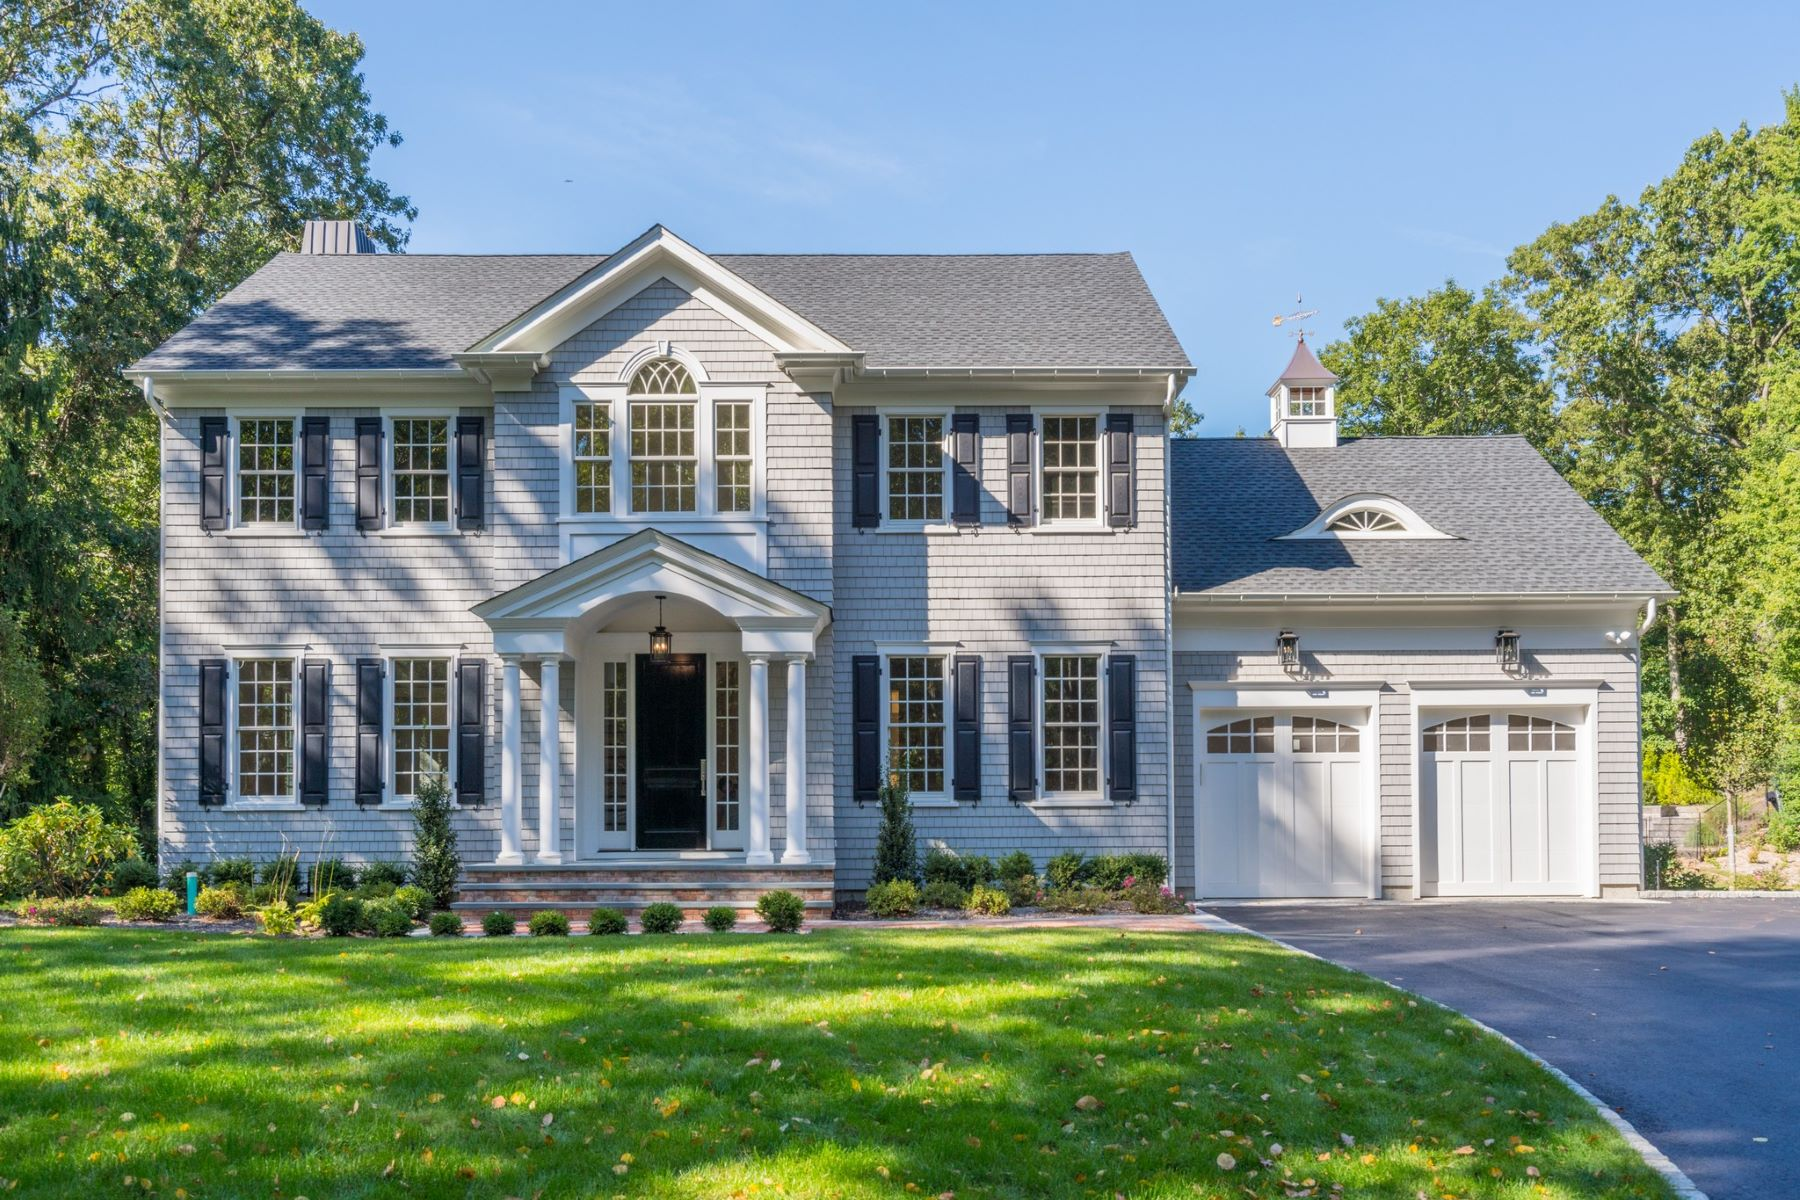 Single Family Homes for Sale at Cold Spring Harbor 74 Wilton Rd Cold Spring Harbor, New York 11724 United States